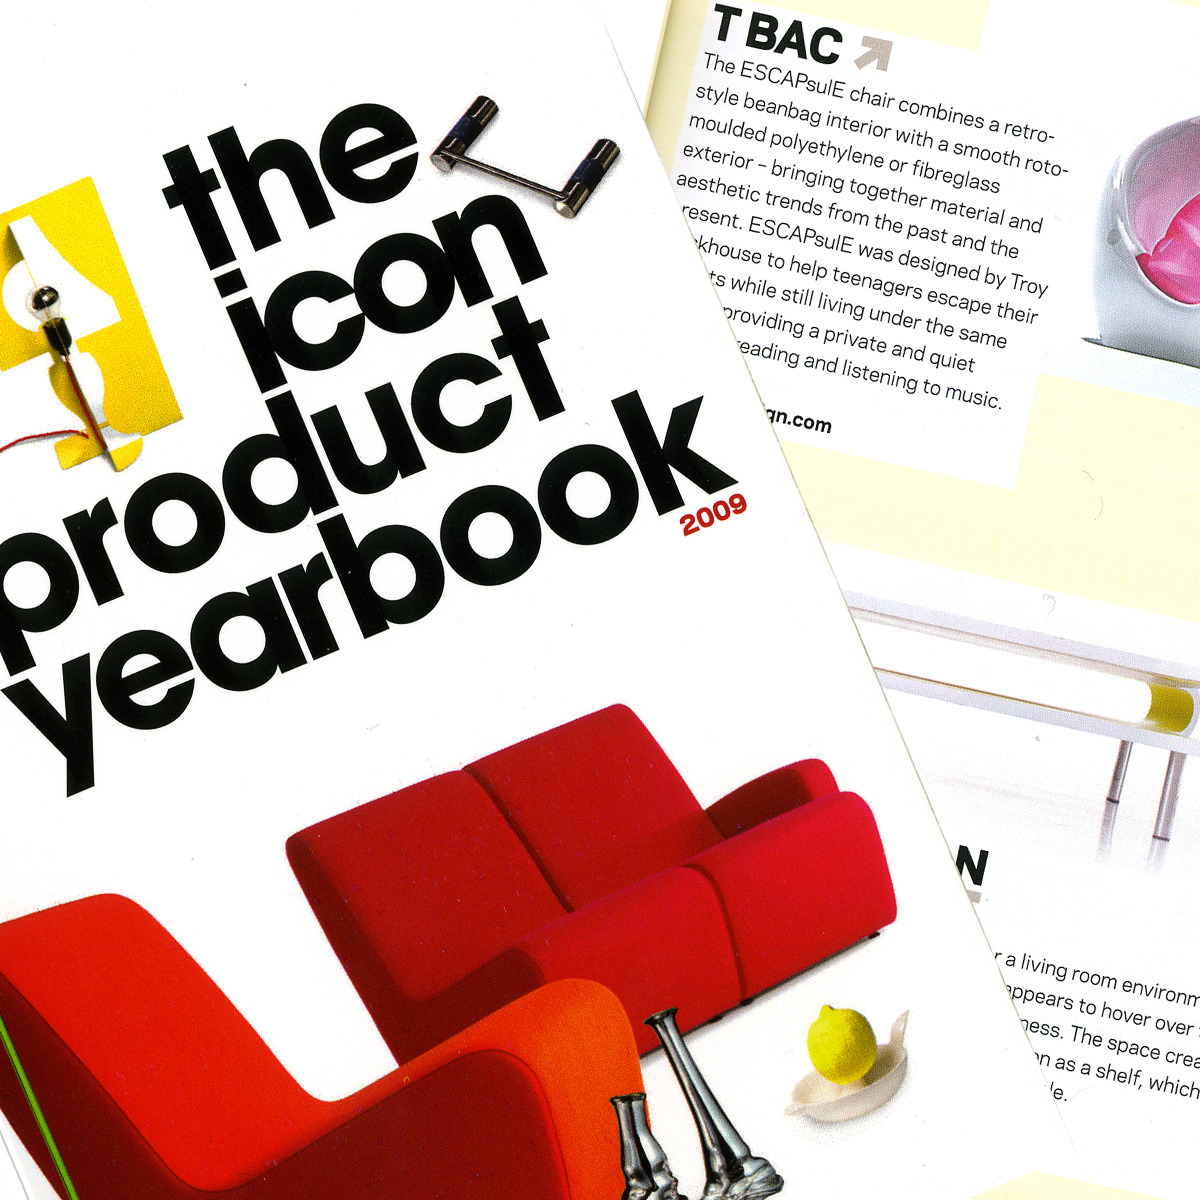 Icon year book publication t bac